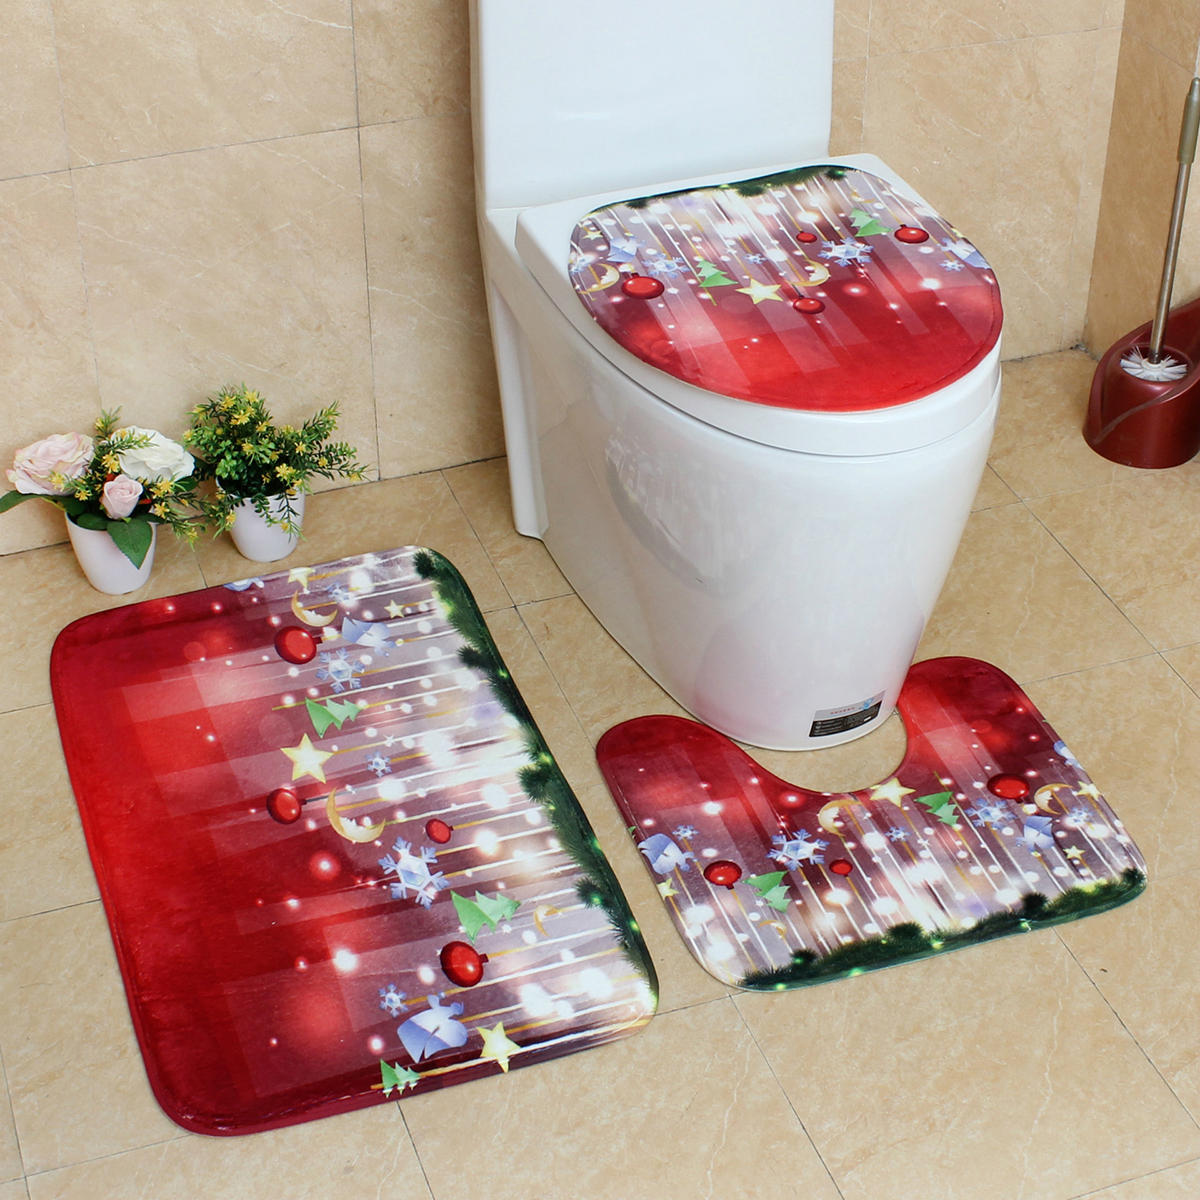 Enjoyable 3Pcs Christmas Foot Pads Toilet Seat Covers Rugs Set Bathroom Set Decoration Xmas Supplies Carpets Washable Squirreltailoven Fun Painted Chair Ideas Images Squirreltailovenorg